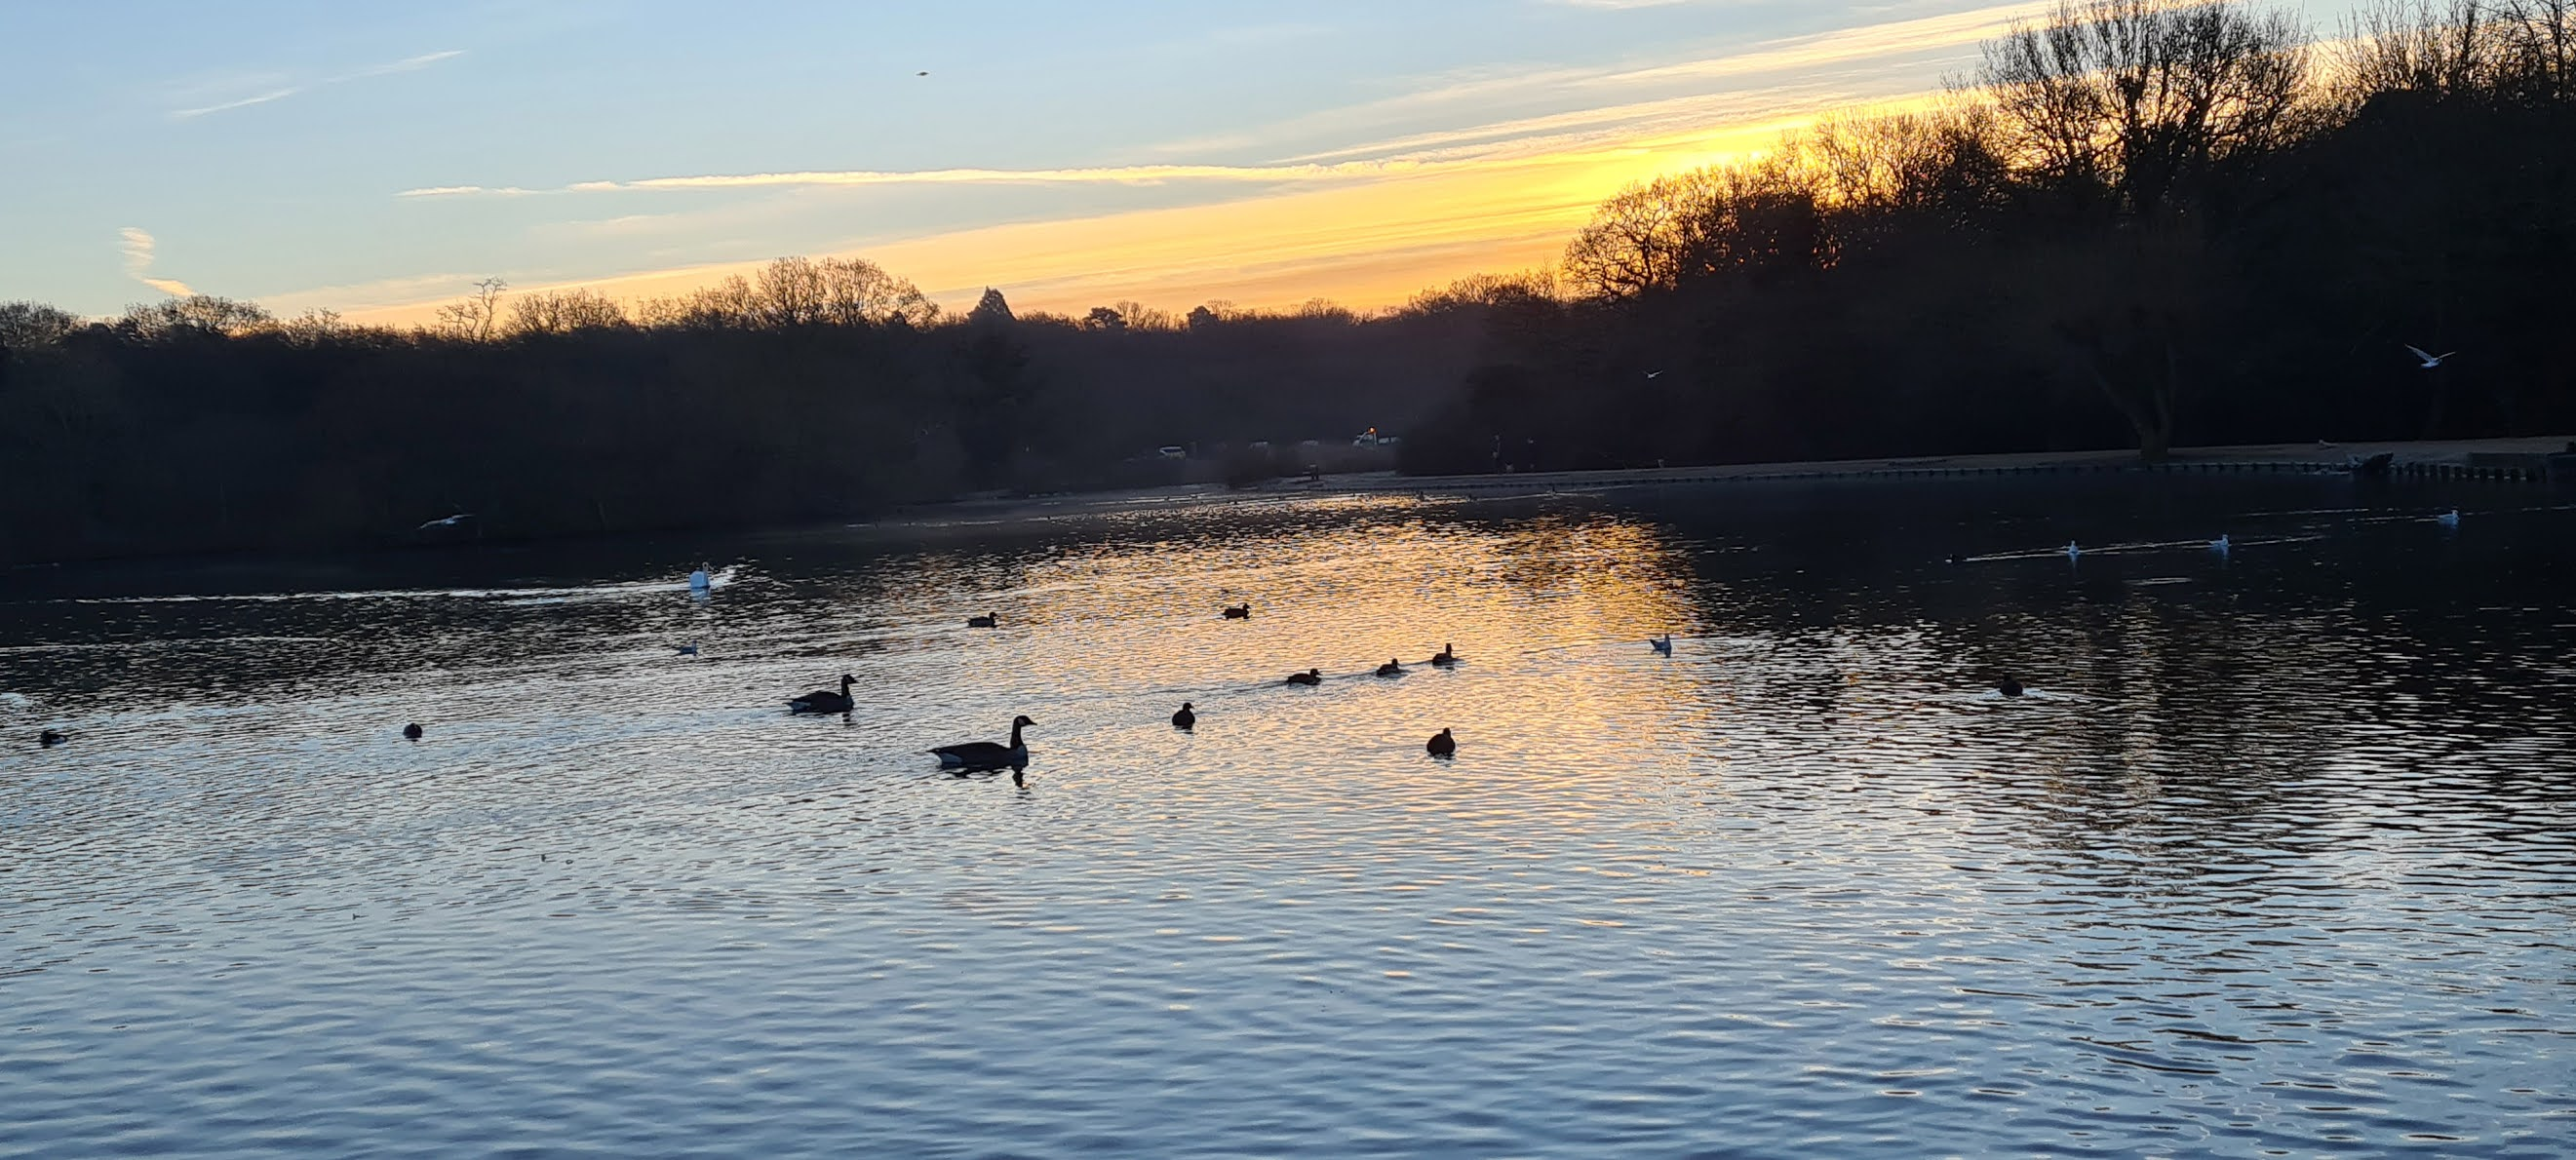 Connaught Water in Epping Forest at sun rise, winter, 2021. Is This Mutton